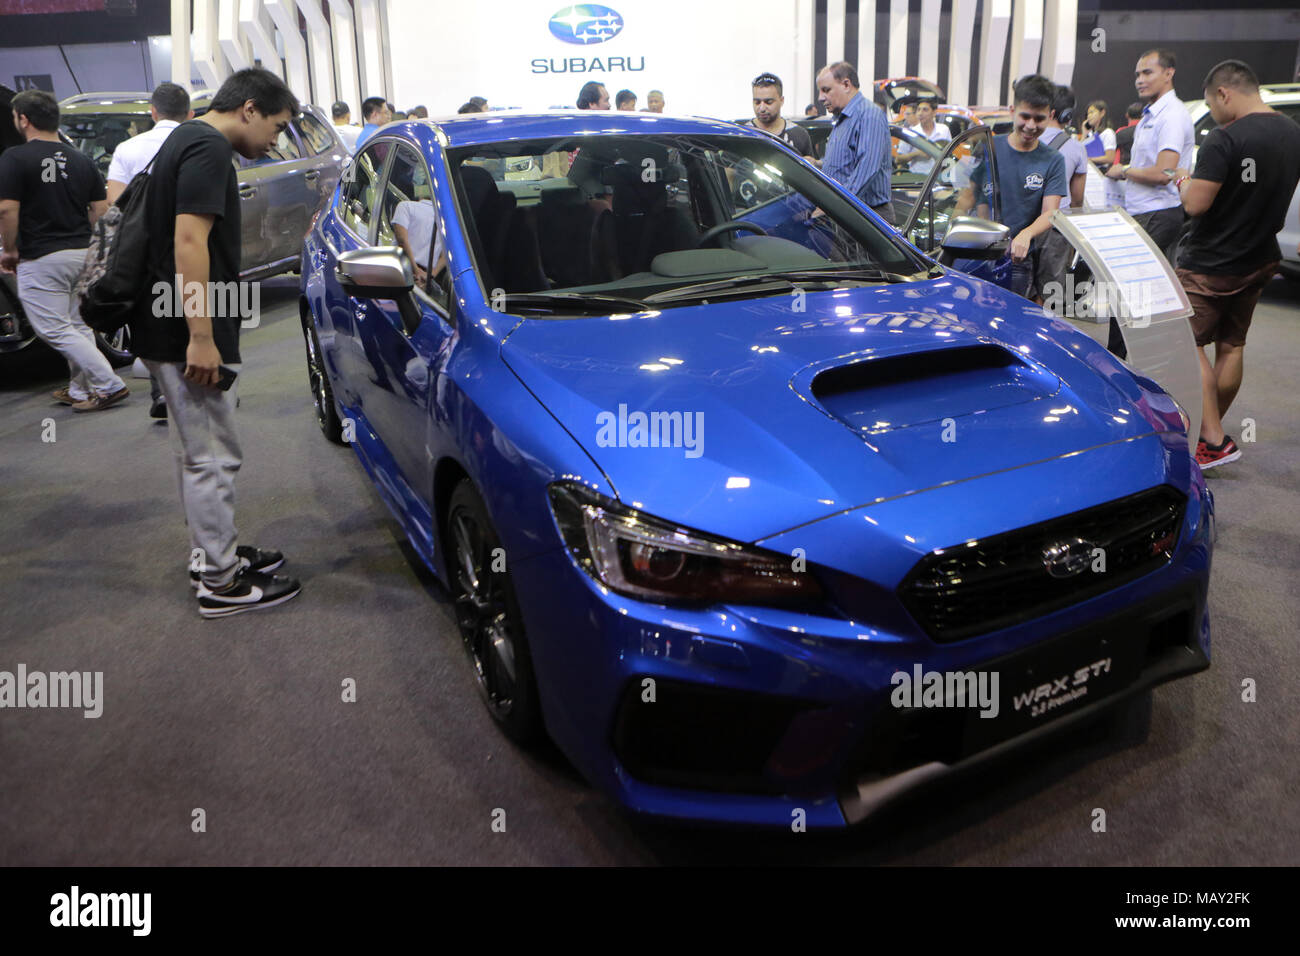 Pasay City, Philippines. 5th Apr, 2018. Visitors Look At A Subaru WRX STI  Car During The Annual Manila International Auto Show At The World Trade  Center In ...